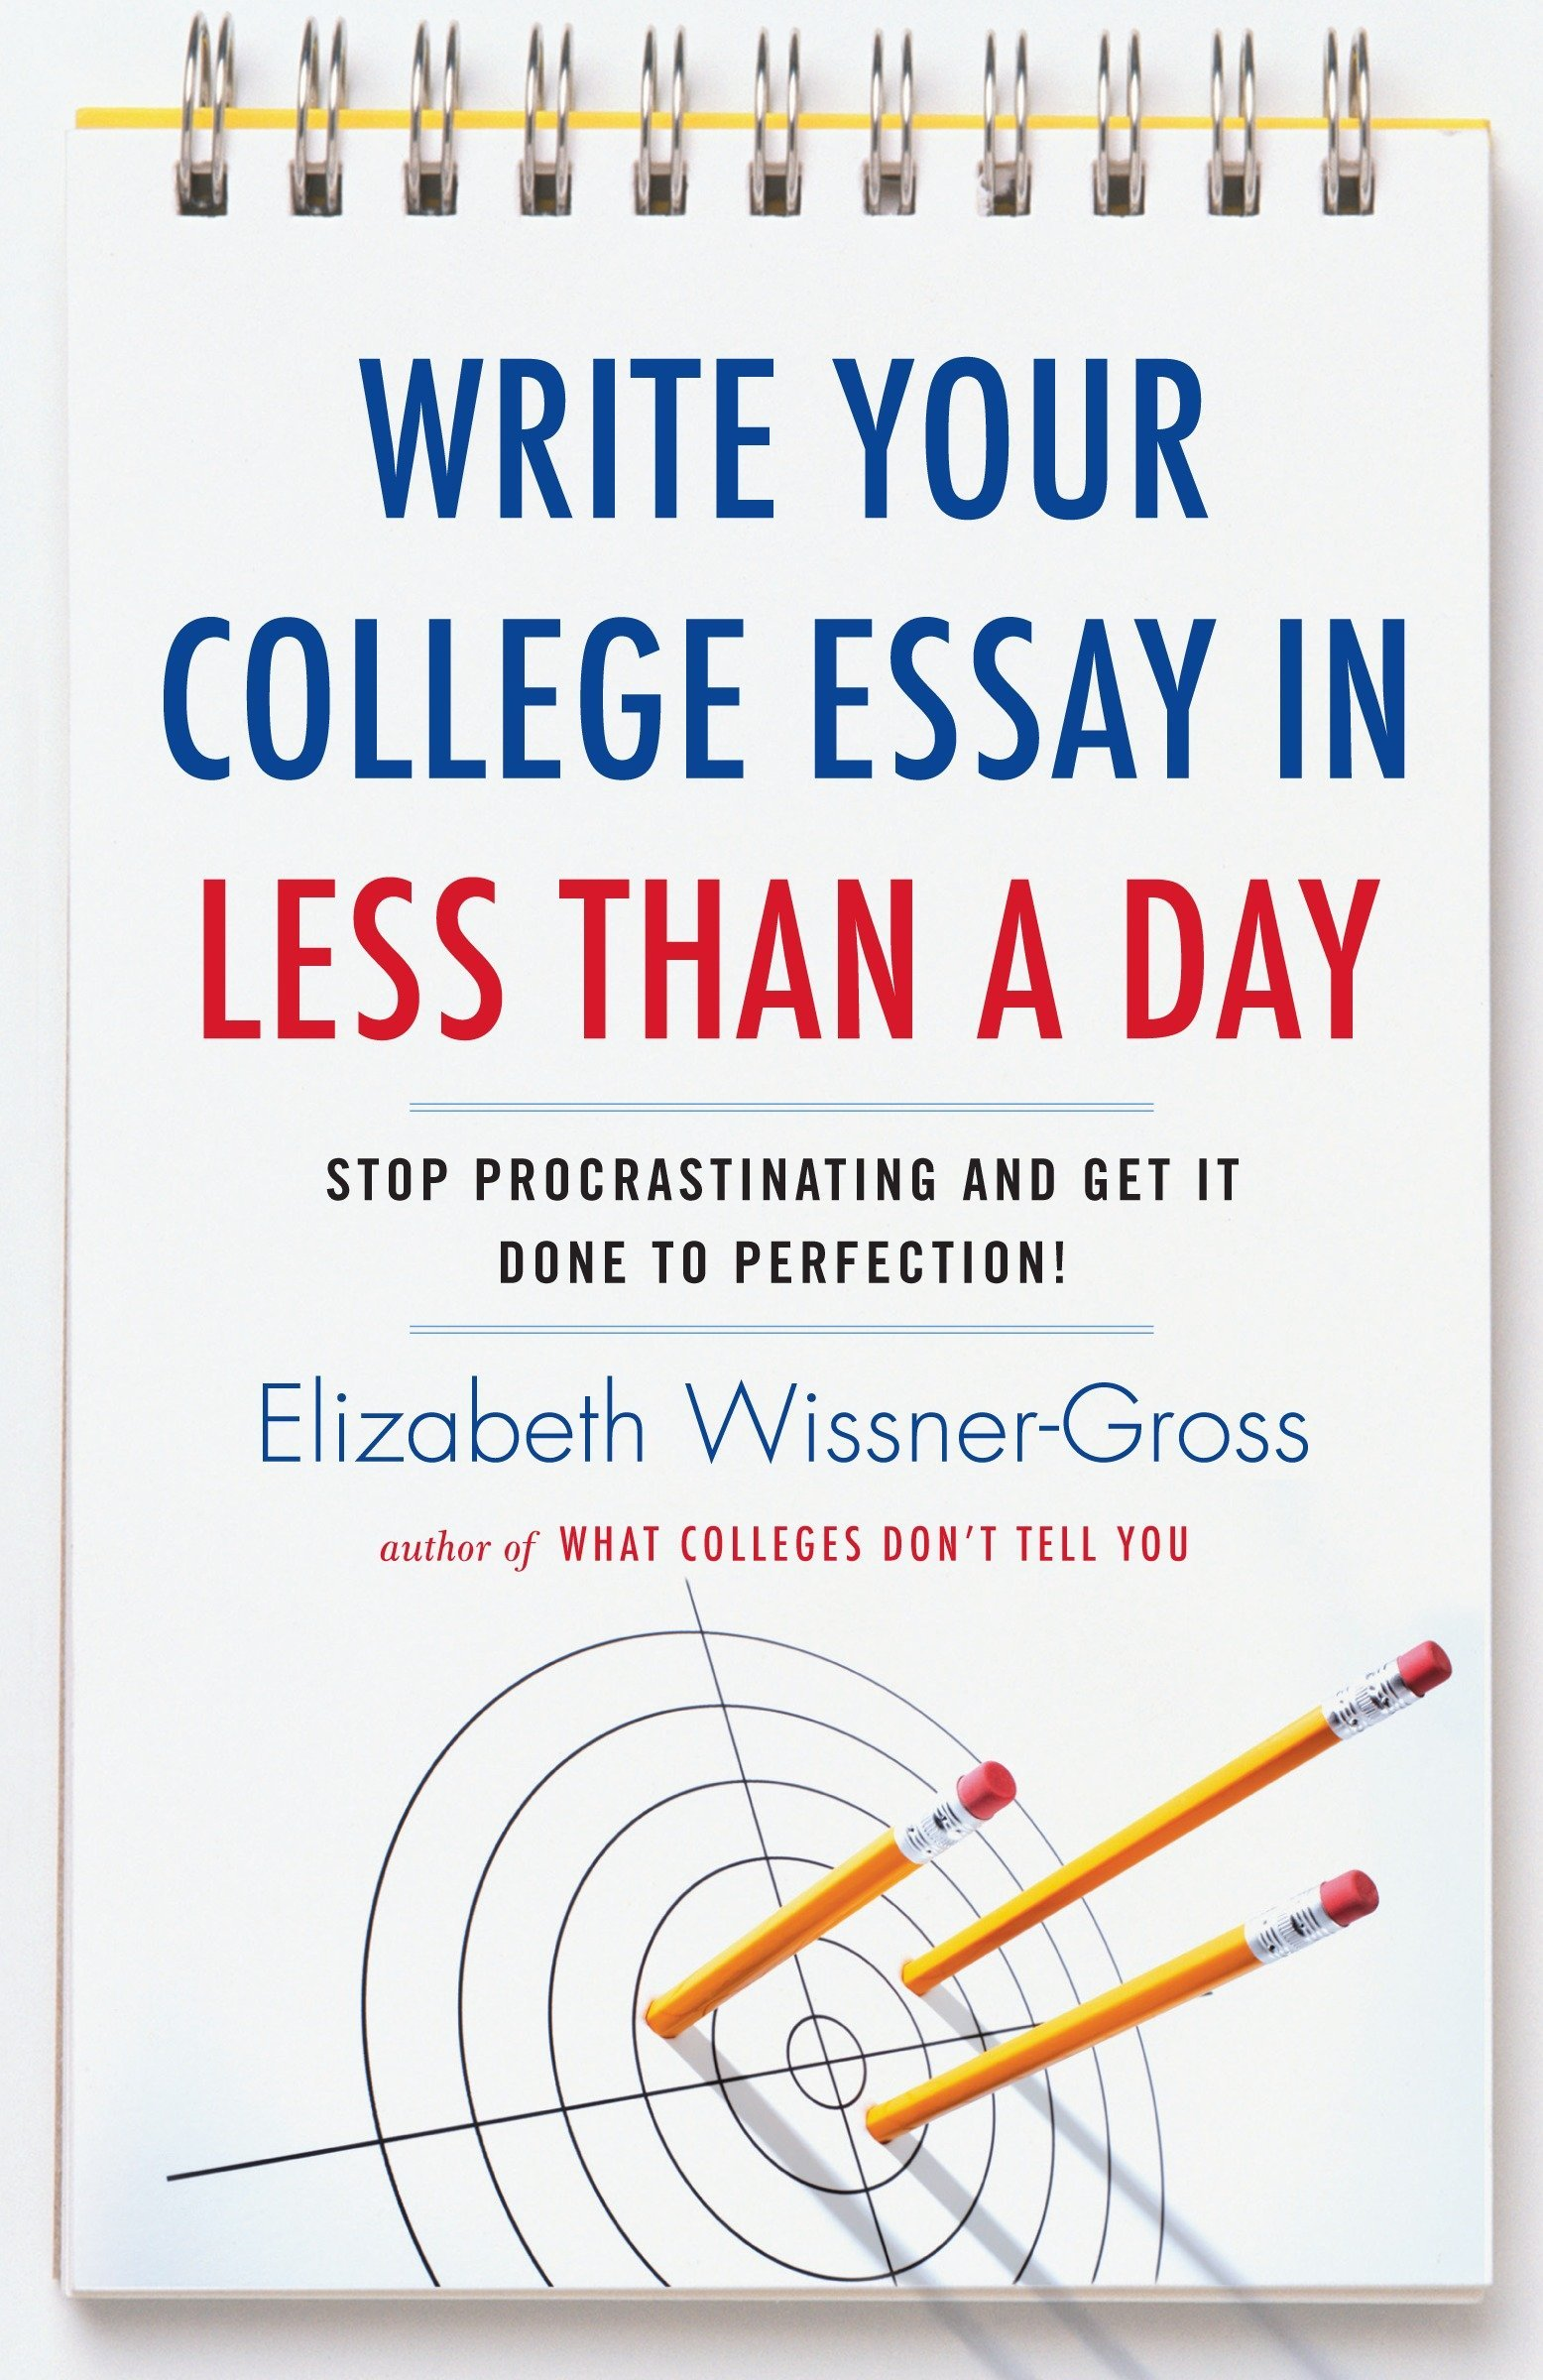 Essays With Thesis Statements Write Your College Essay In Less Than A Day Stop Procrastinating And Get  It Done To Perfection Elizabeth Wissnergross  Amazoncom  Books Health Promotion Essays also My Mother Essay In English Write Your College Essay In Less Than A Day Stop Procrastinating  An Essay On English Language